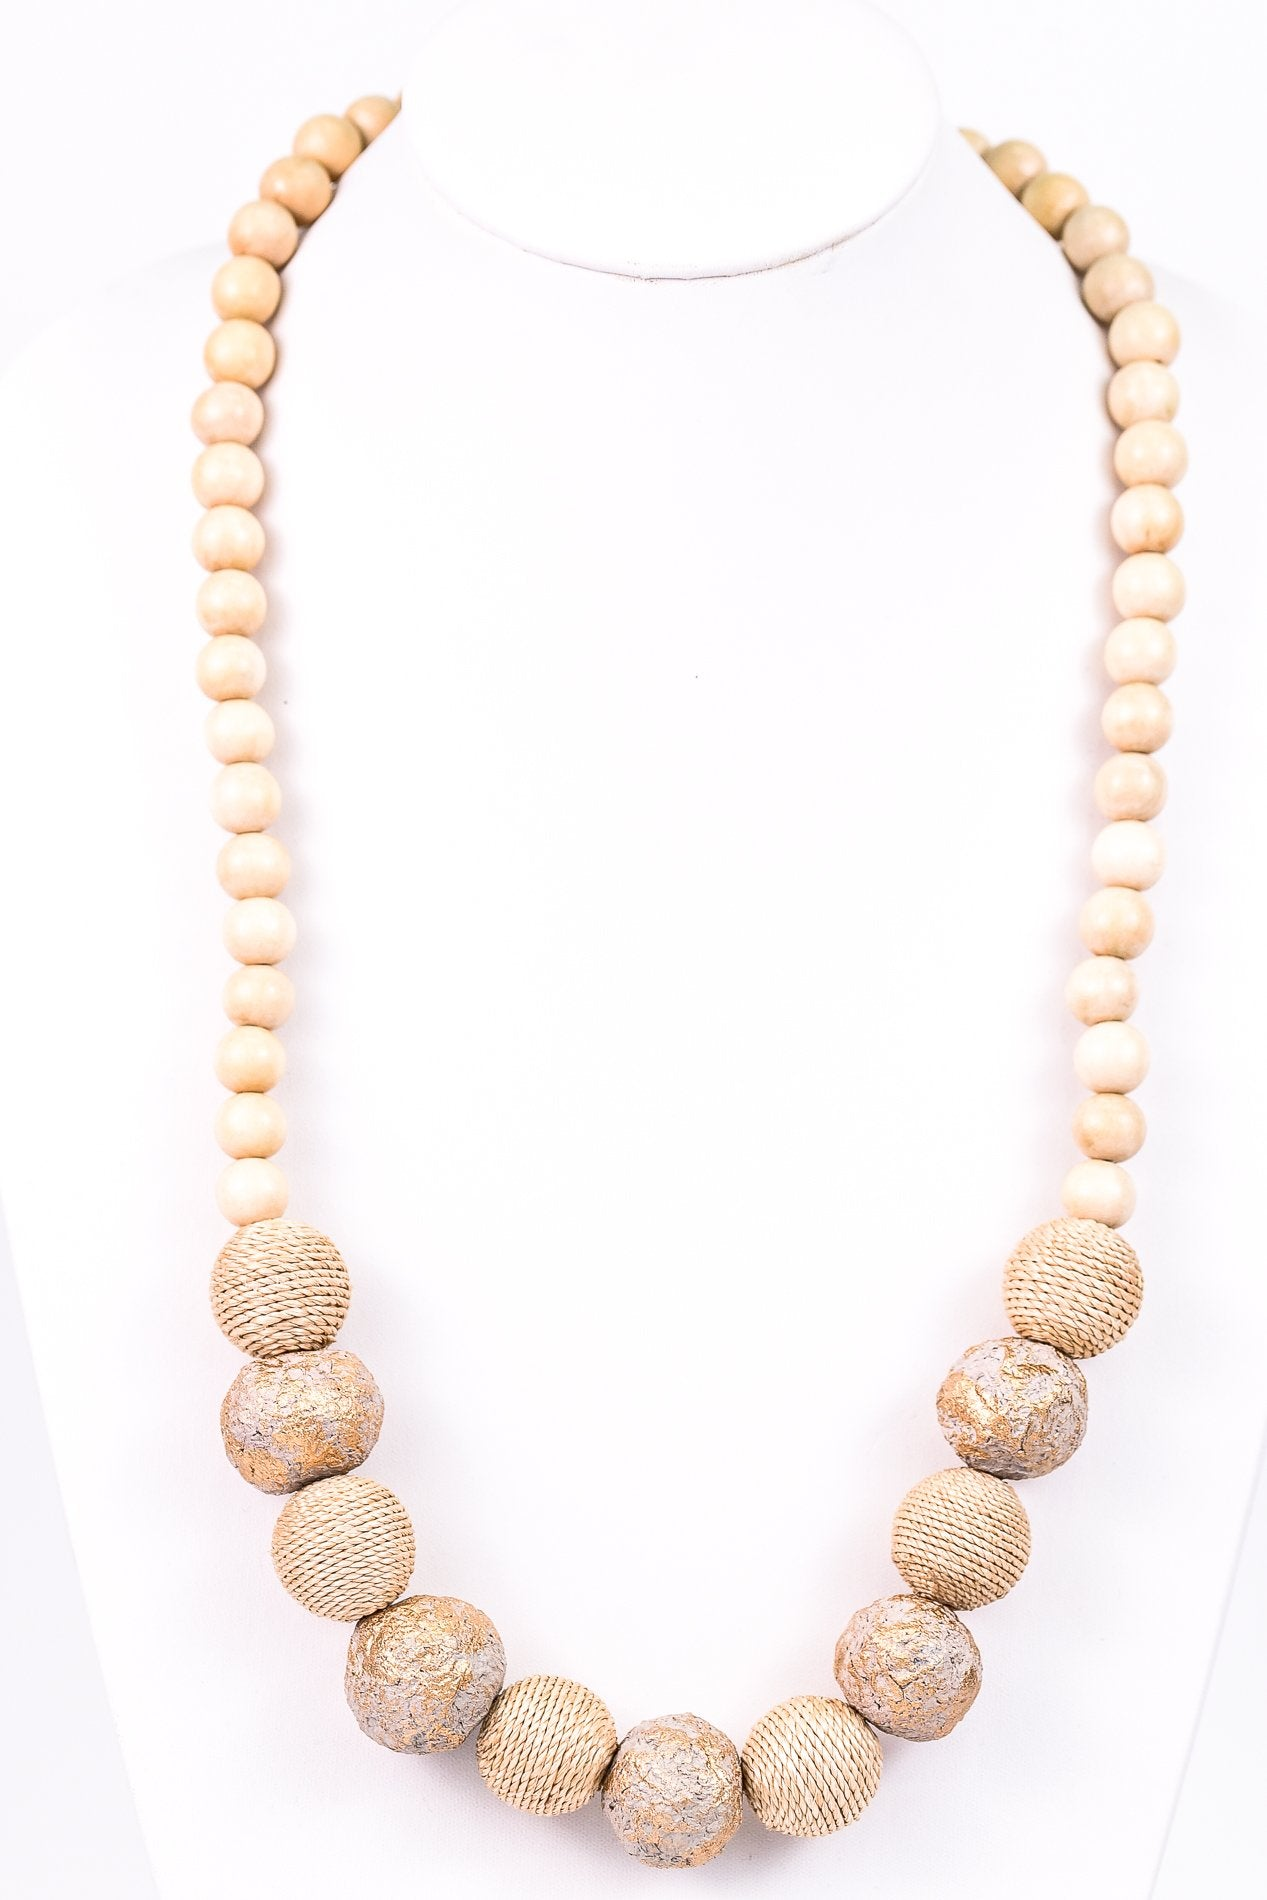 Natural/Gold Rattan/Wooden Beaded Necklace - NEK2430NA